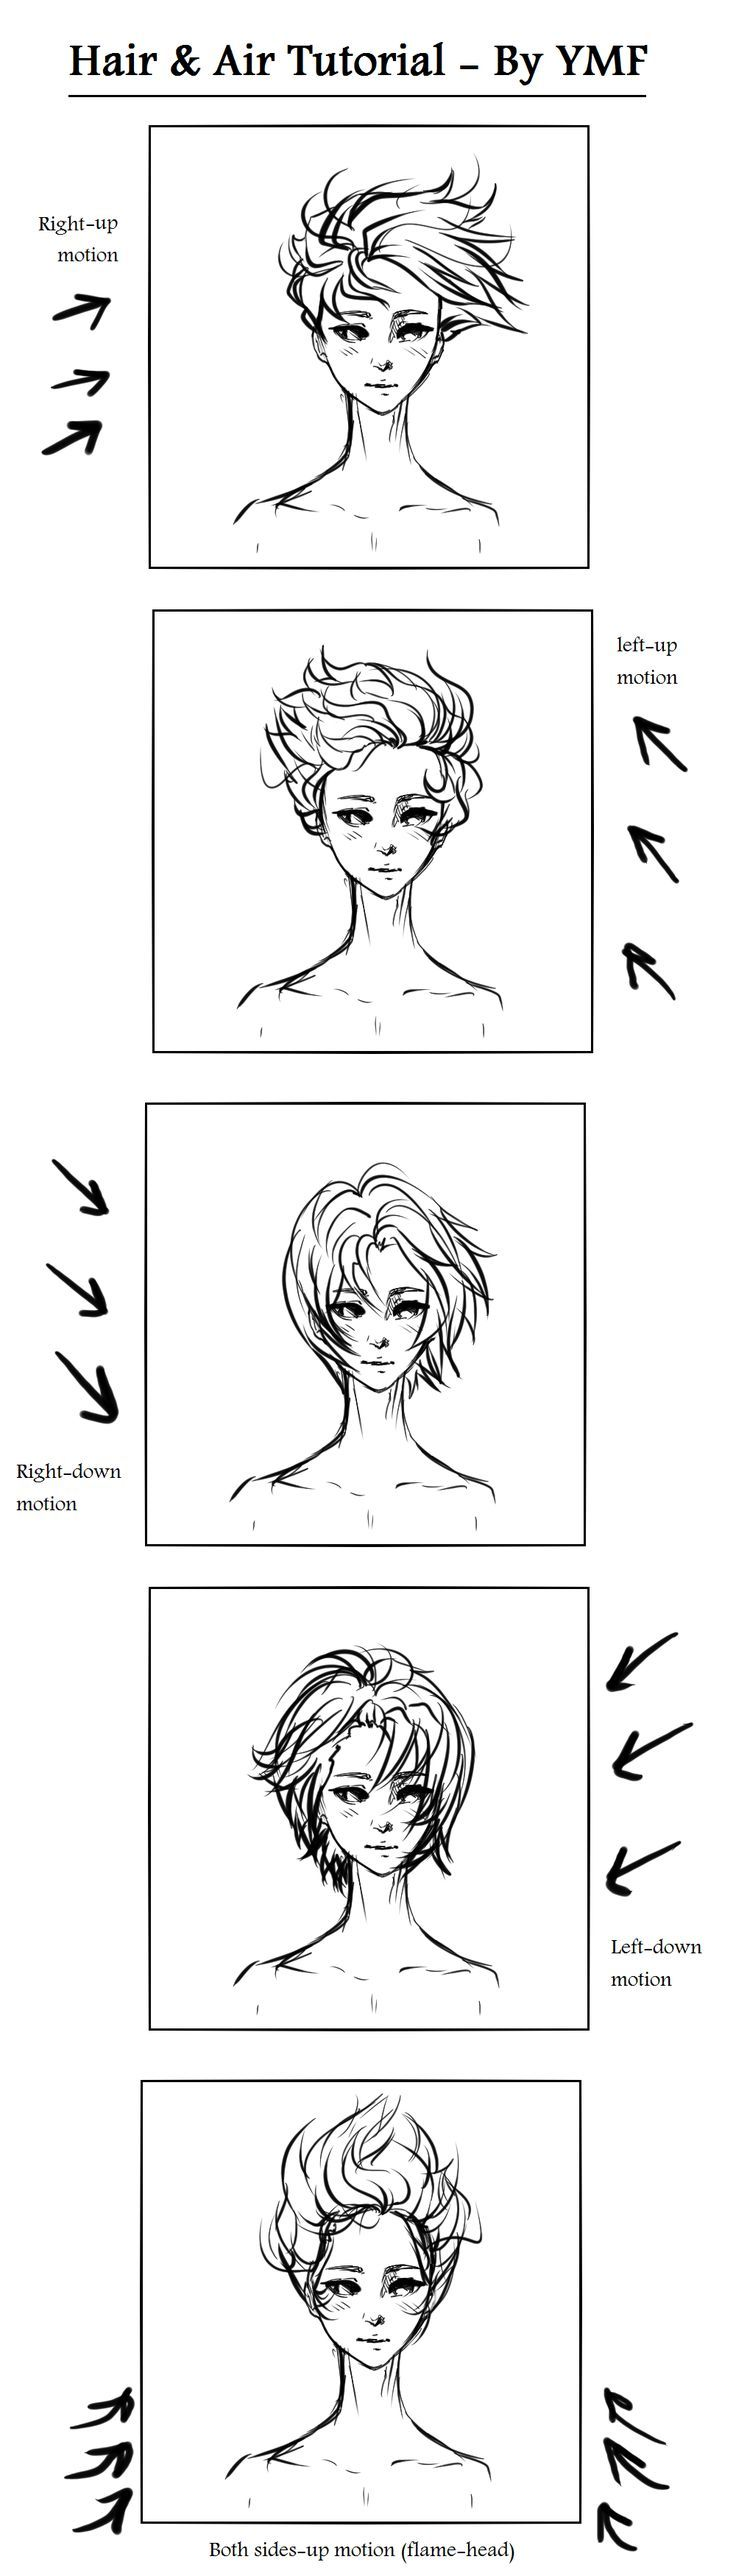 Guide Reference How To Draw Anime Master Anime Ecchi Picture Wallpapers http://epicwallcz.blogspot.com/ ([>>https://shorte.st/es/ref/f3865e4100<<]):